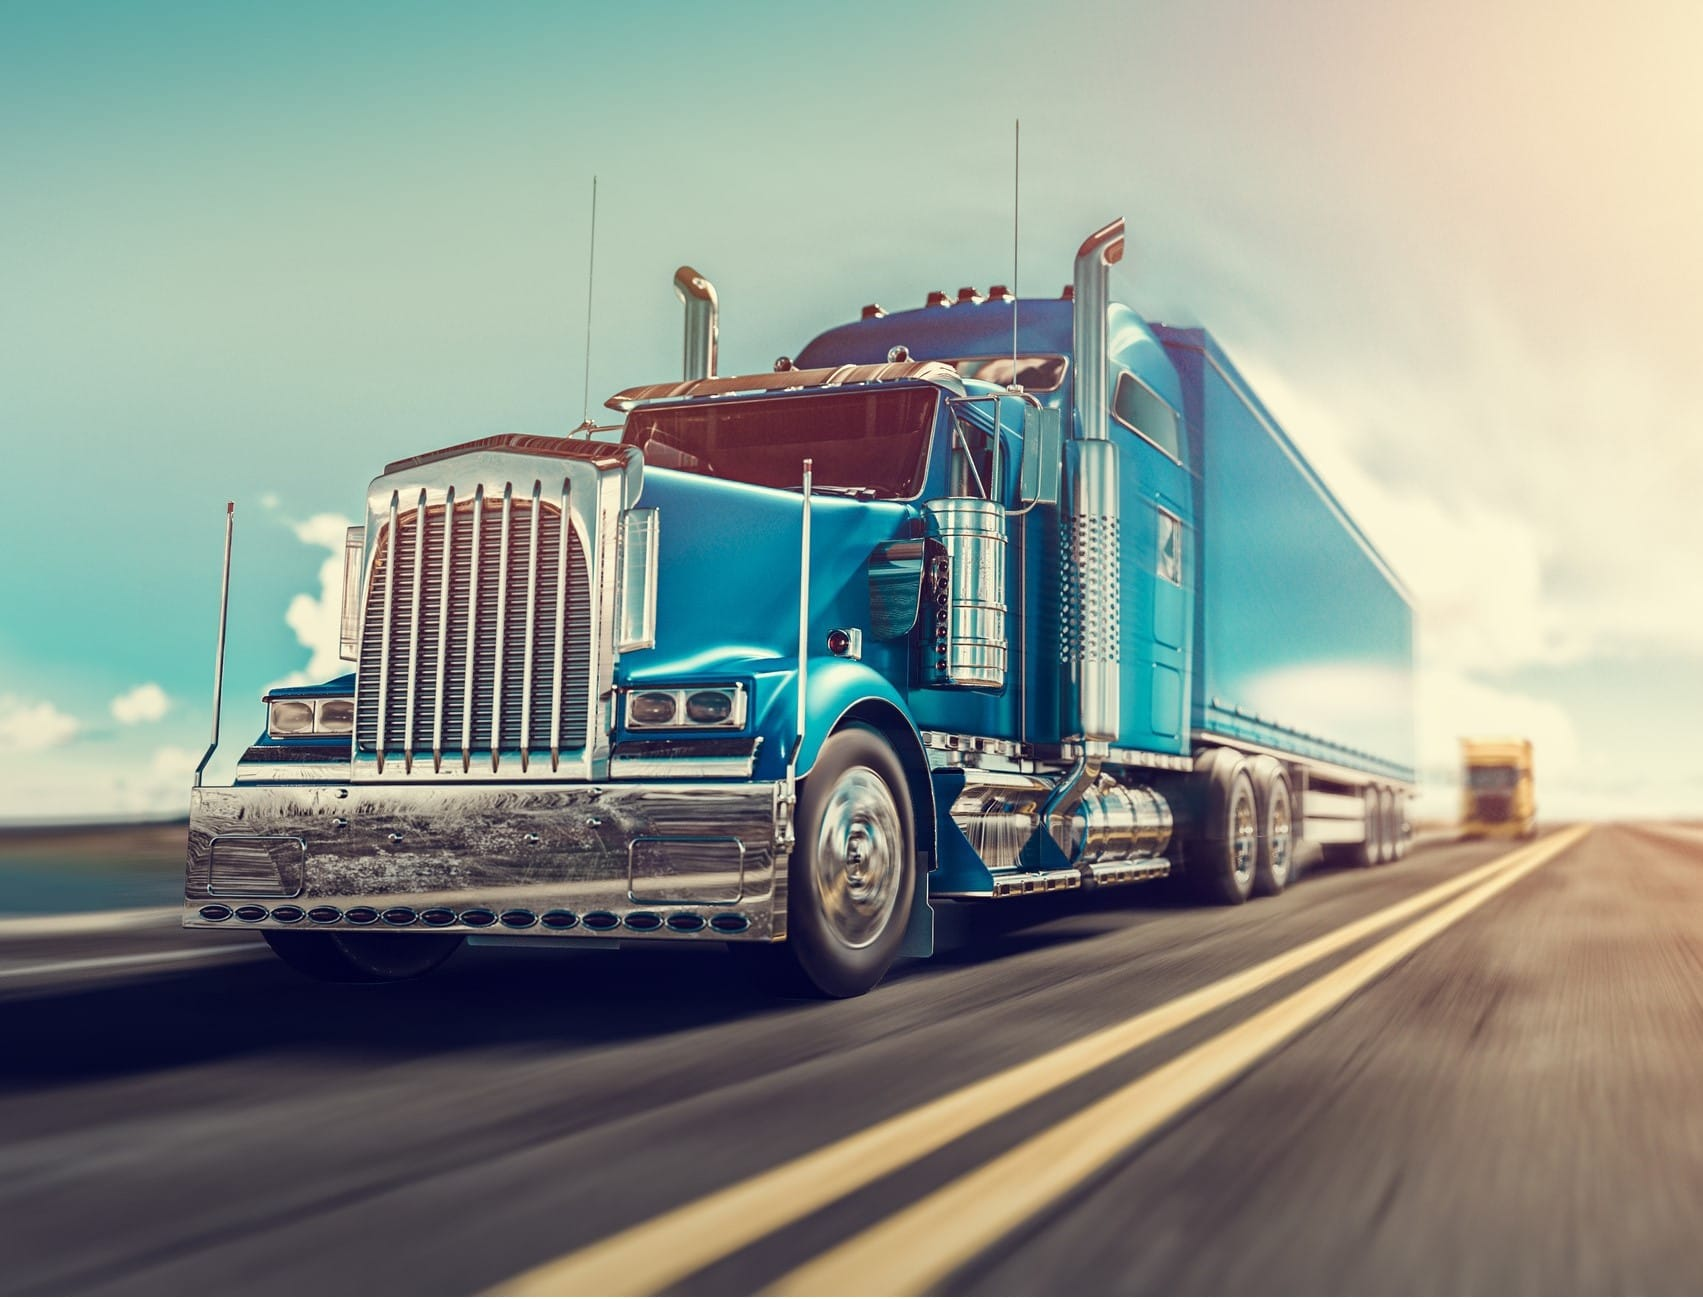 A blue semi-truck driving on highway.